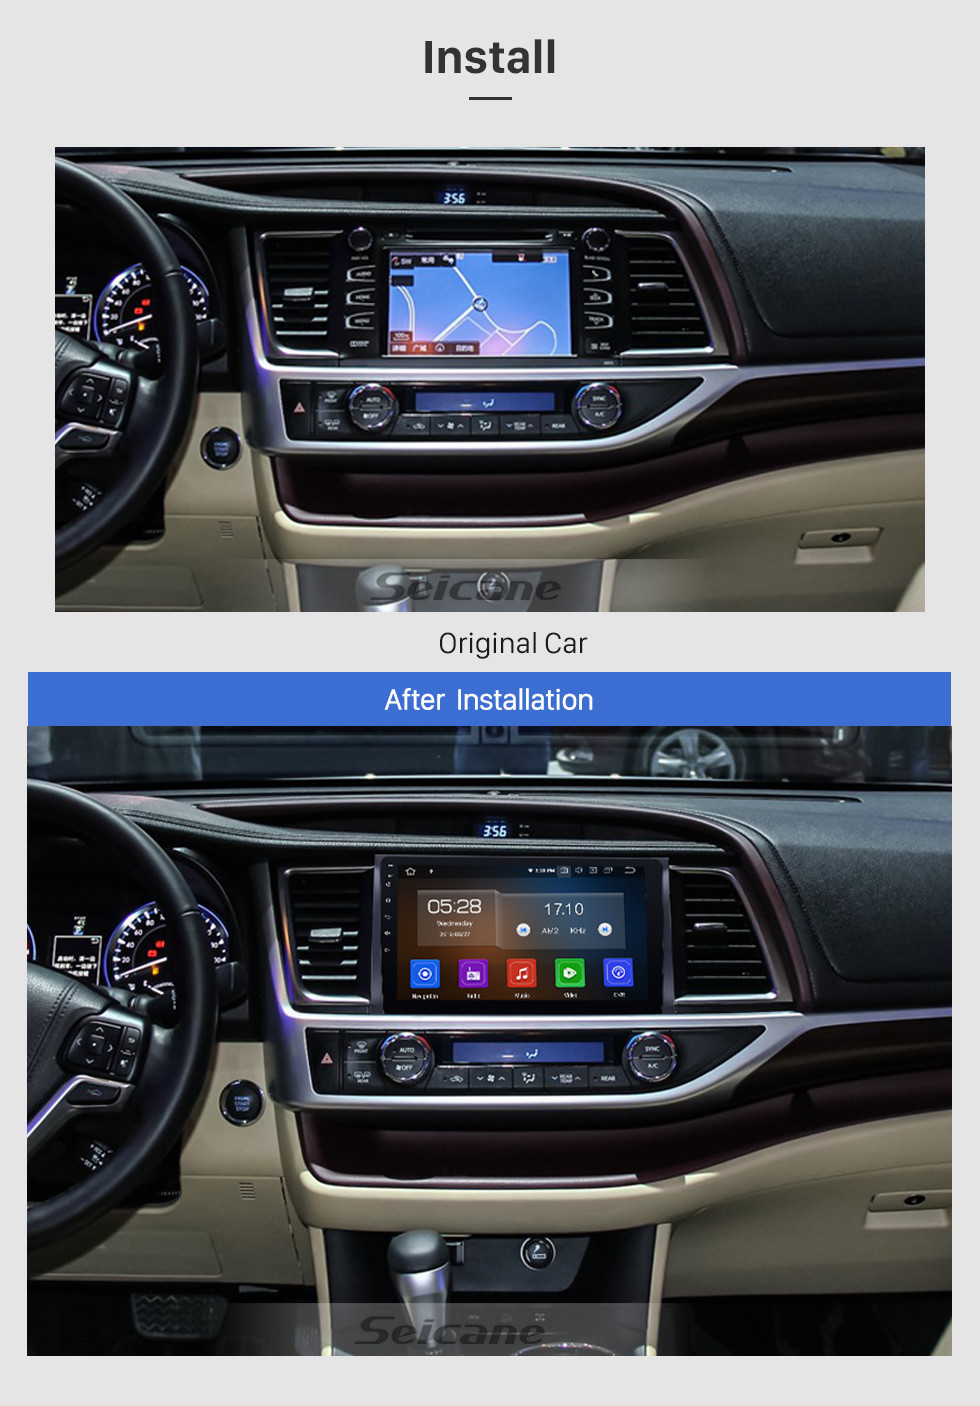 Seicane 10.1 Inch 2015 Toyota Highlander Android 10.0 HD Touch Screen Radio GPS Navigation system with Bluetooth TPMS DVR OBD II Rear camera AUX USB 3G WiFi Steering Wheel Control Video